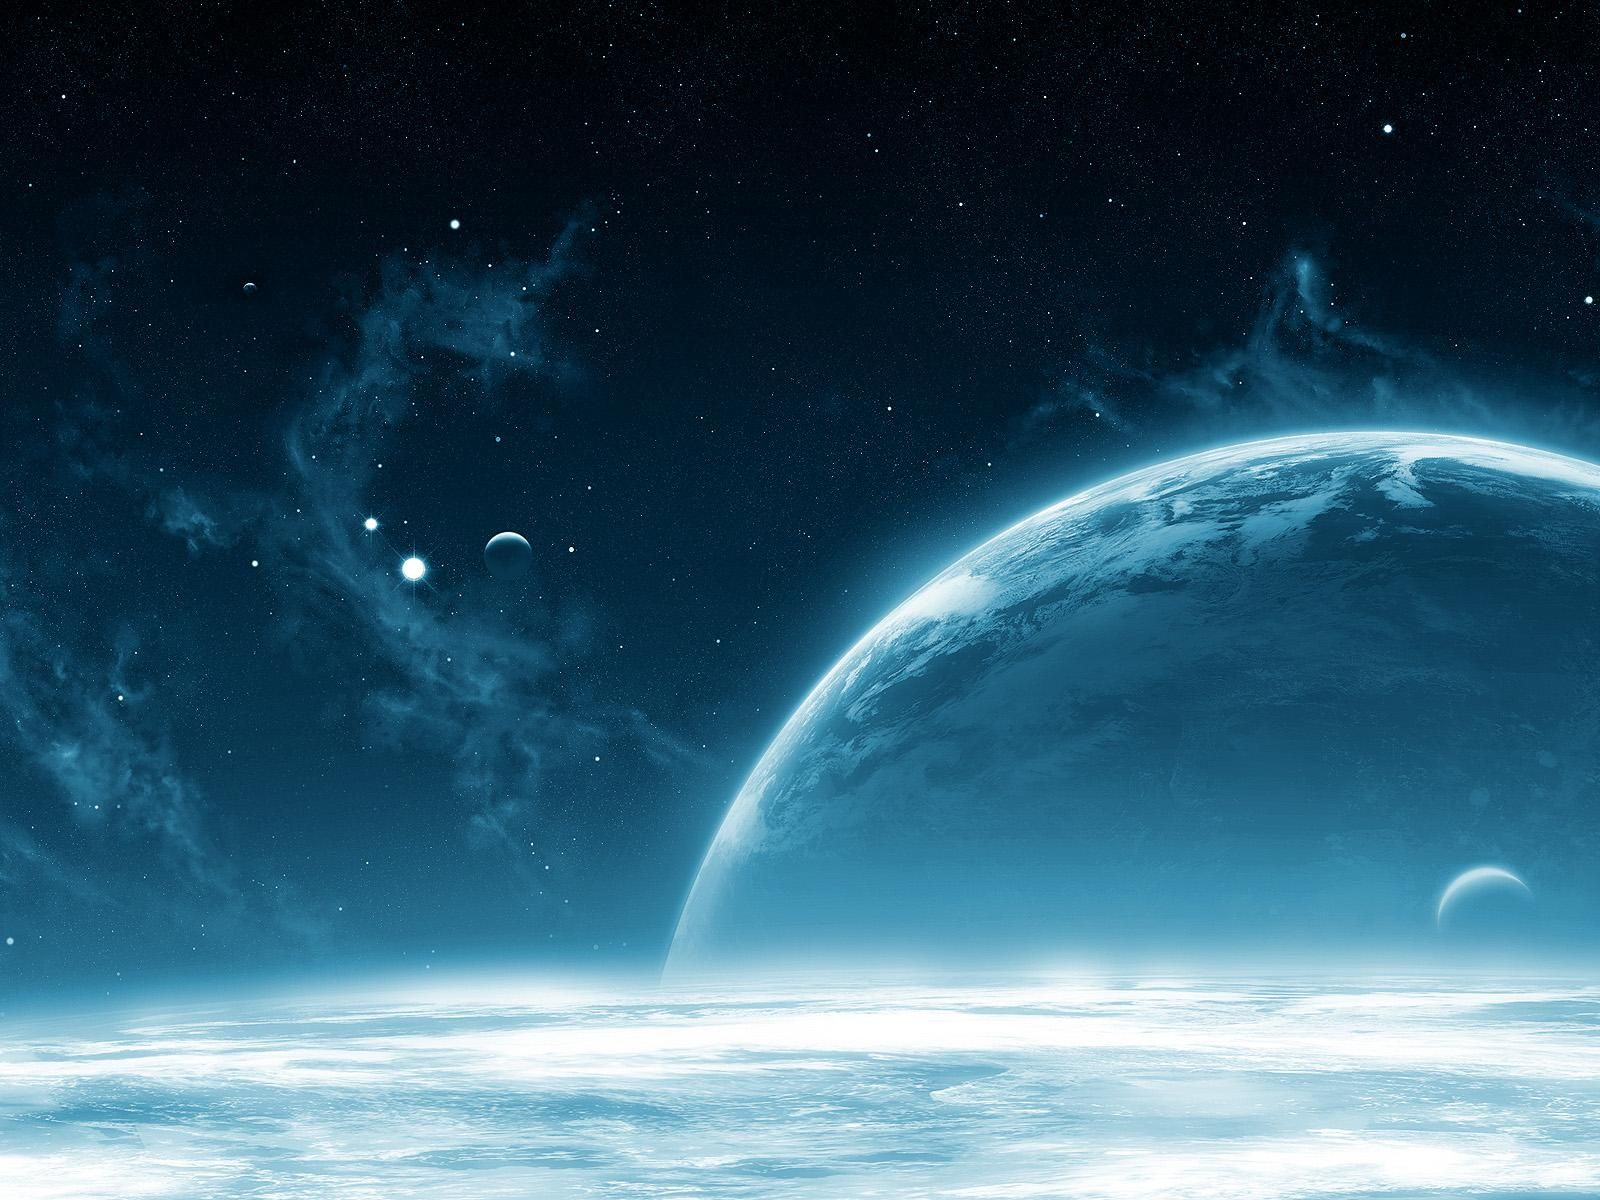 sci fi planet rise moons planets cosmos sci fi stars miscellaneous space wallpapers part